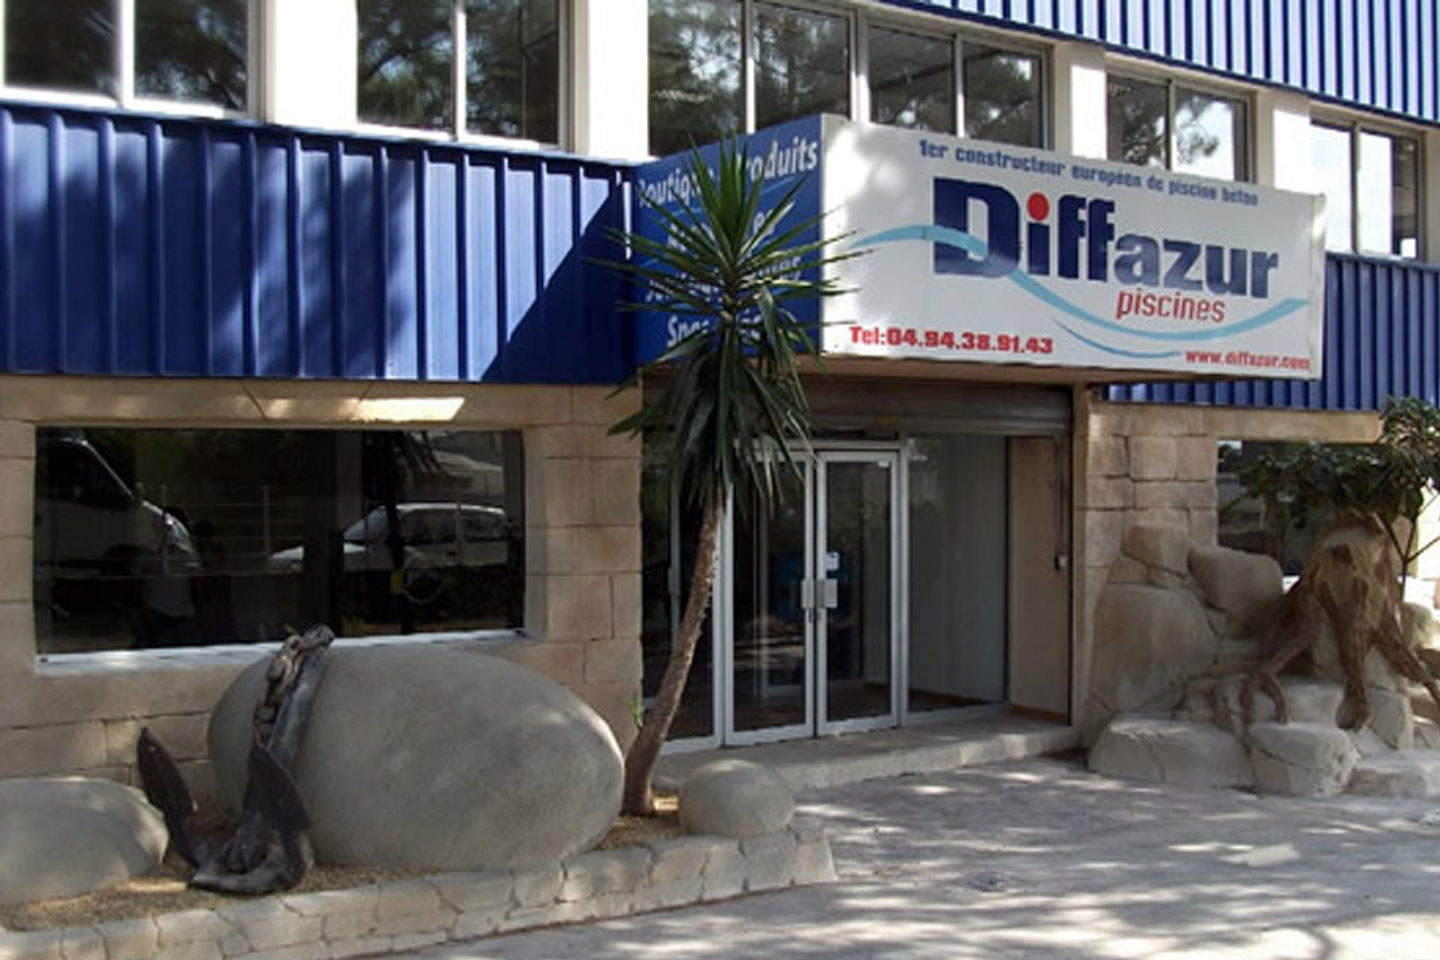 Photo Magasin Diffazur Piscines Toulon